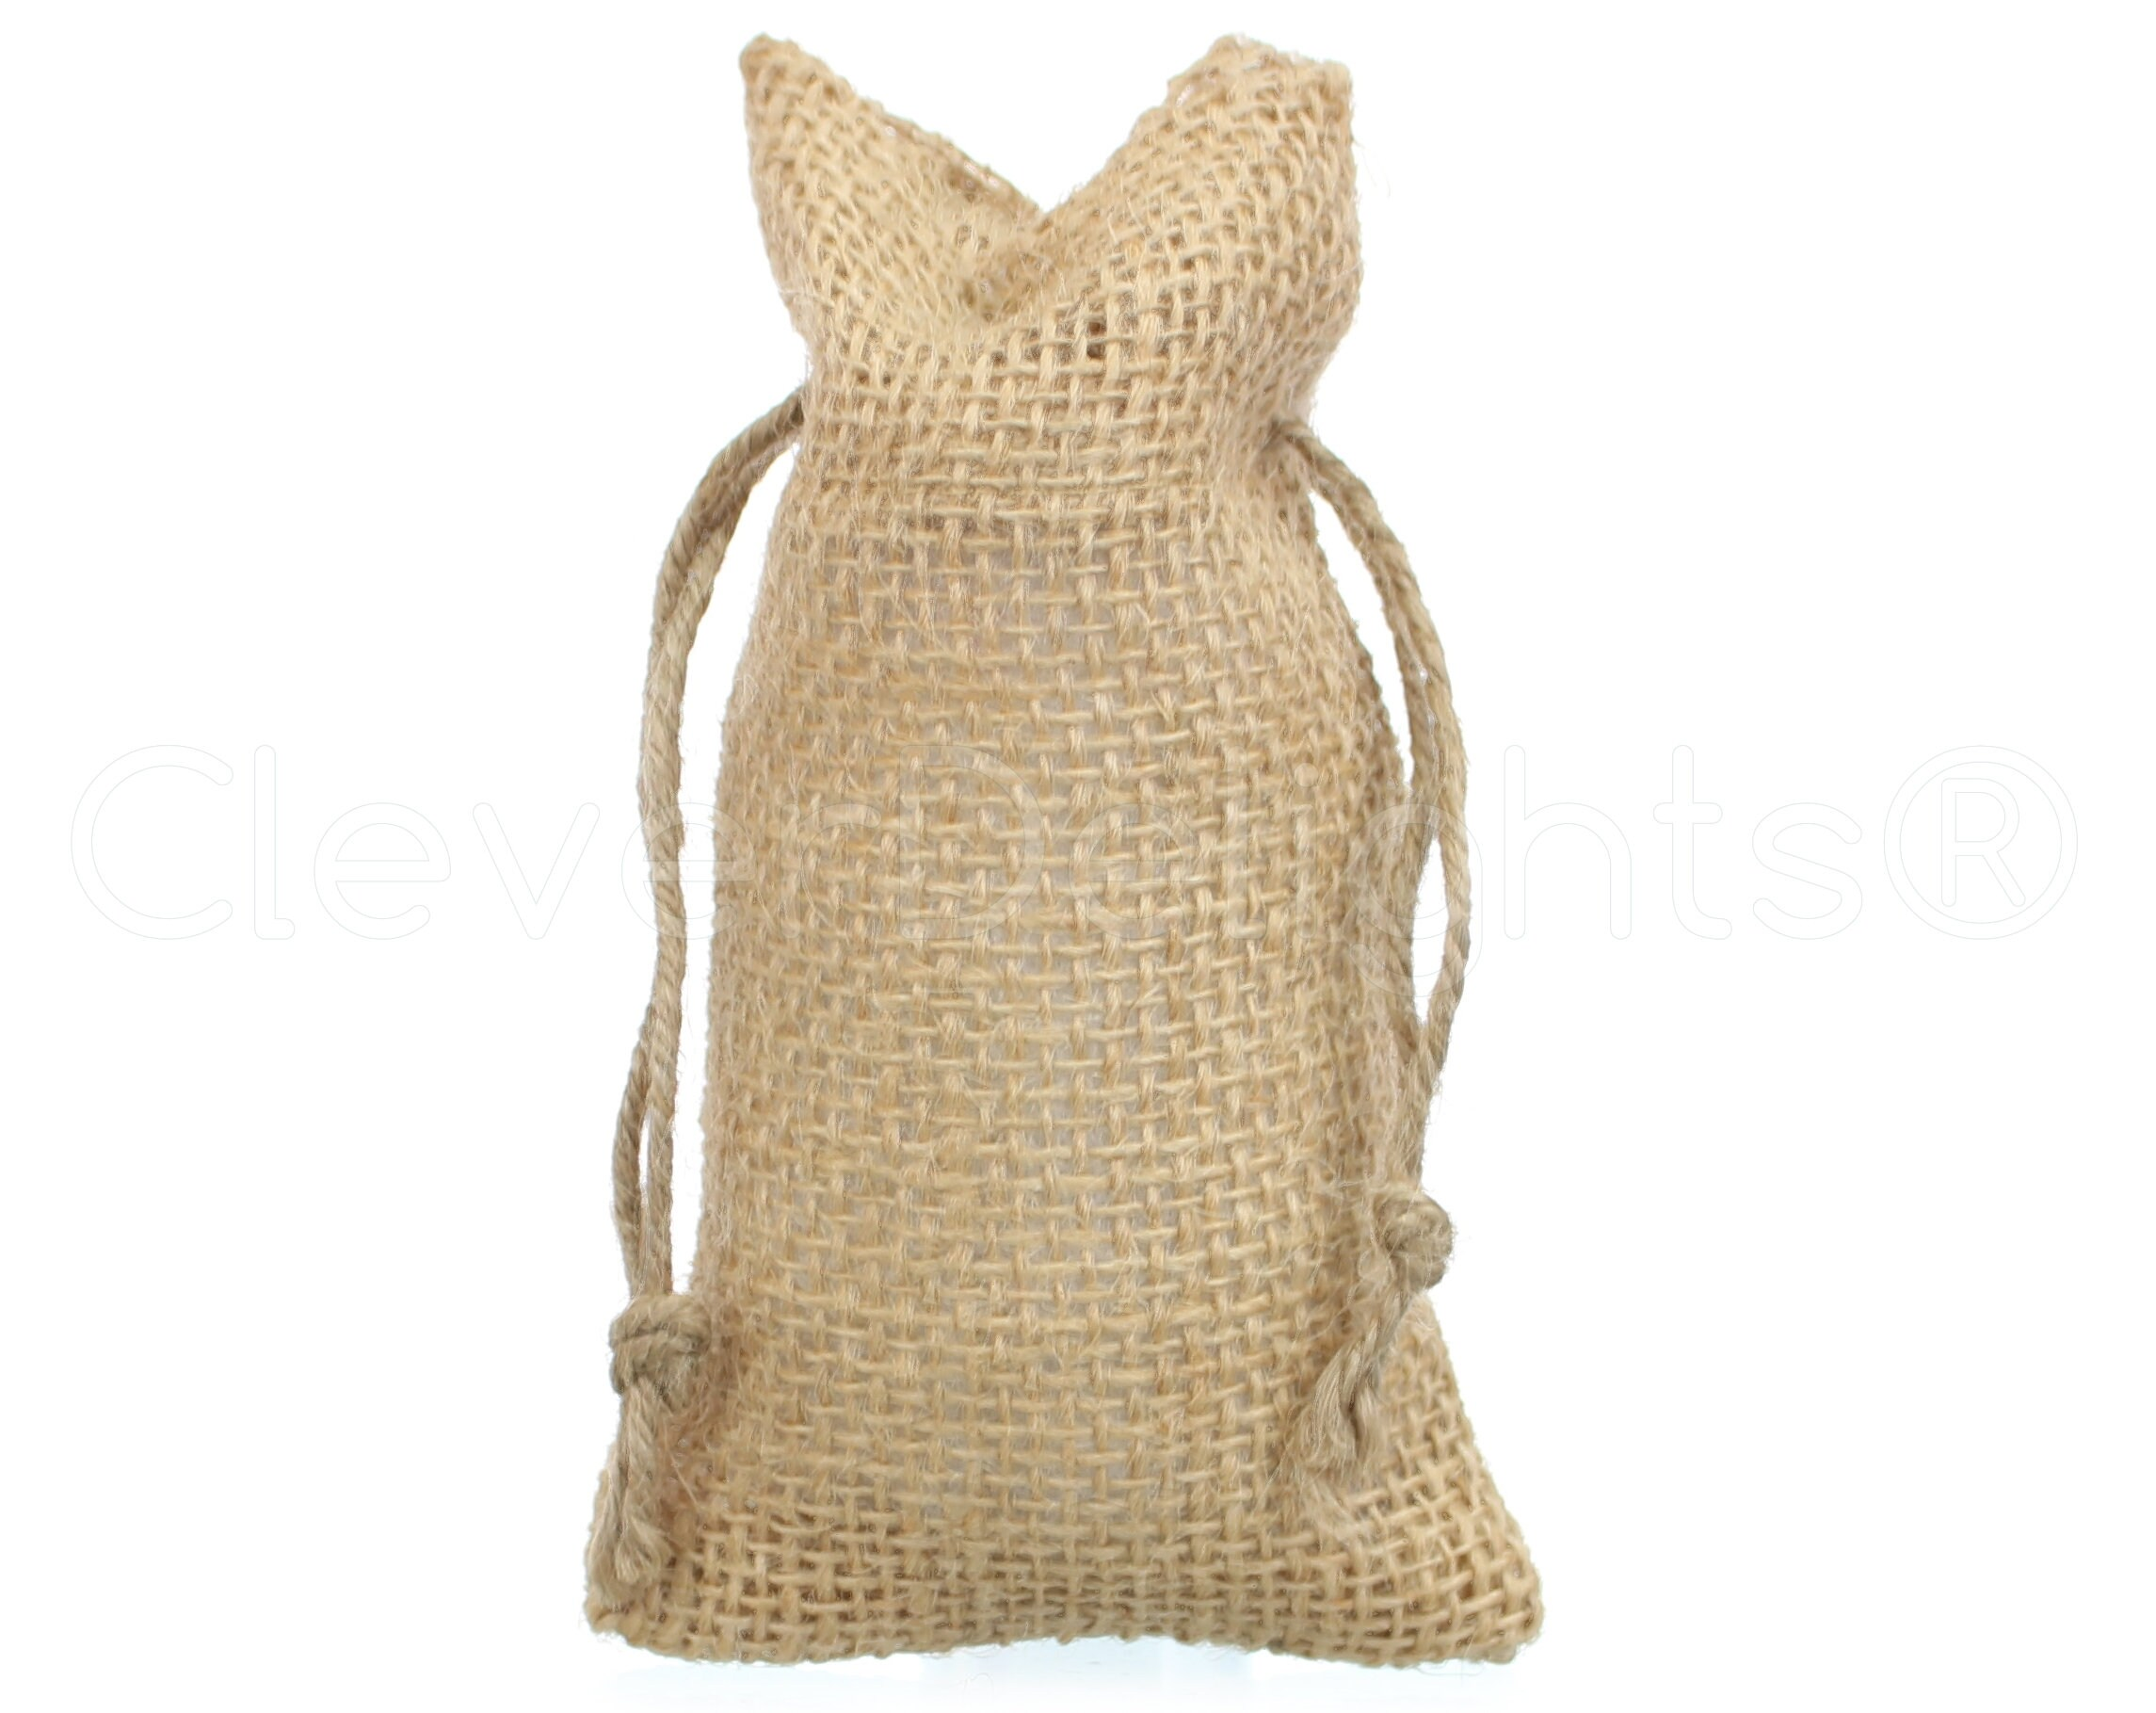 Small burlap bags Cloth 50 Party Spin 50 3x5 Small Burlap Bags Natural Rustic Burlap Bags With Etsy